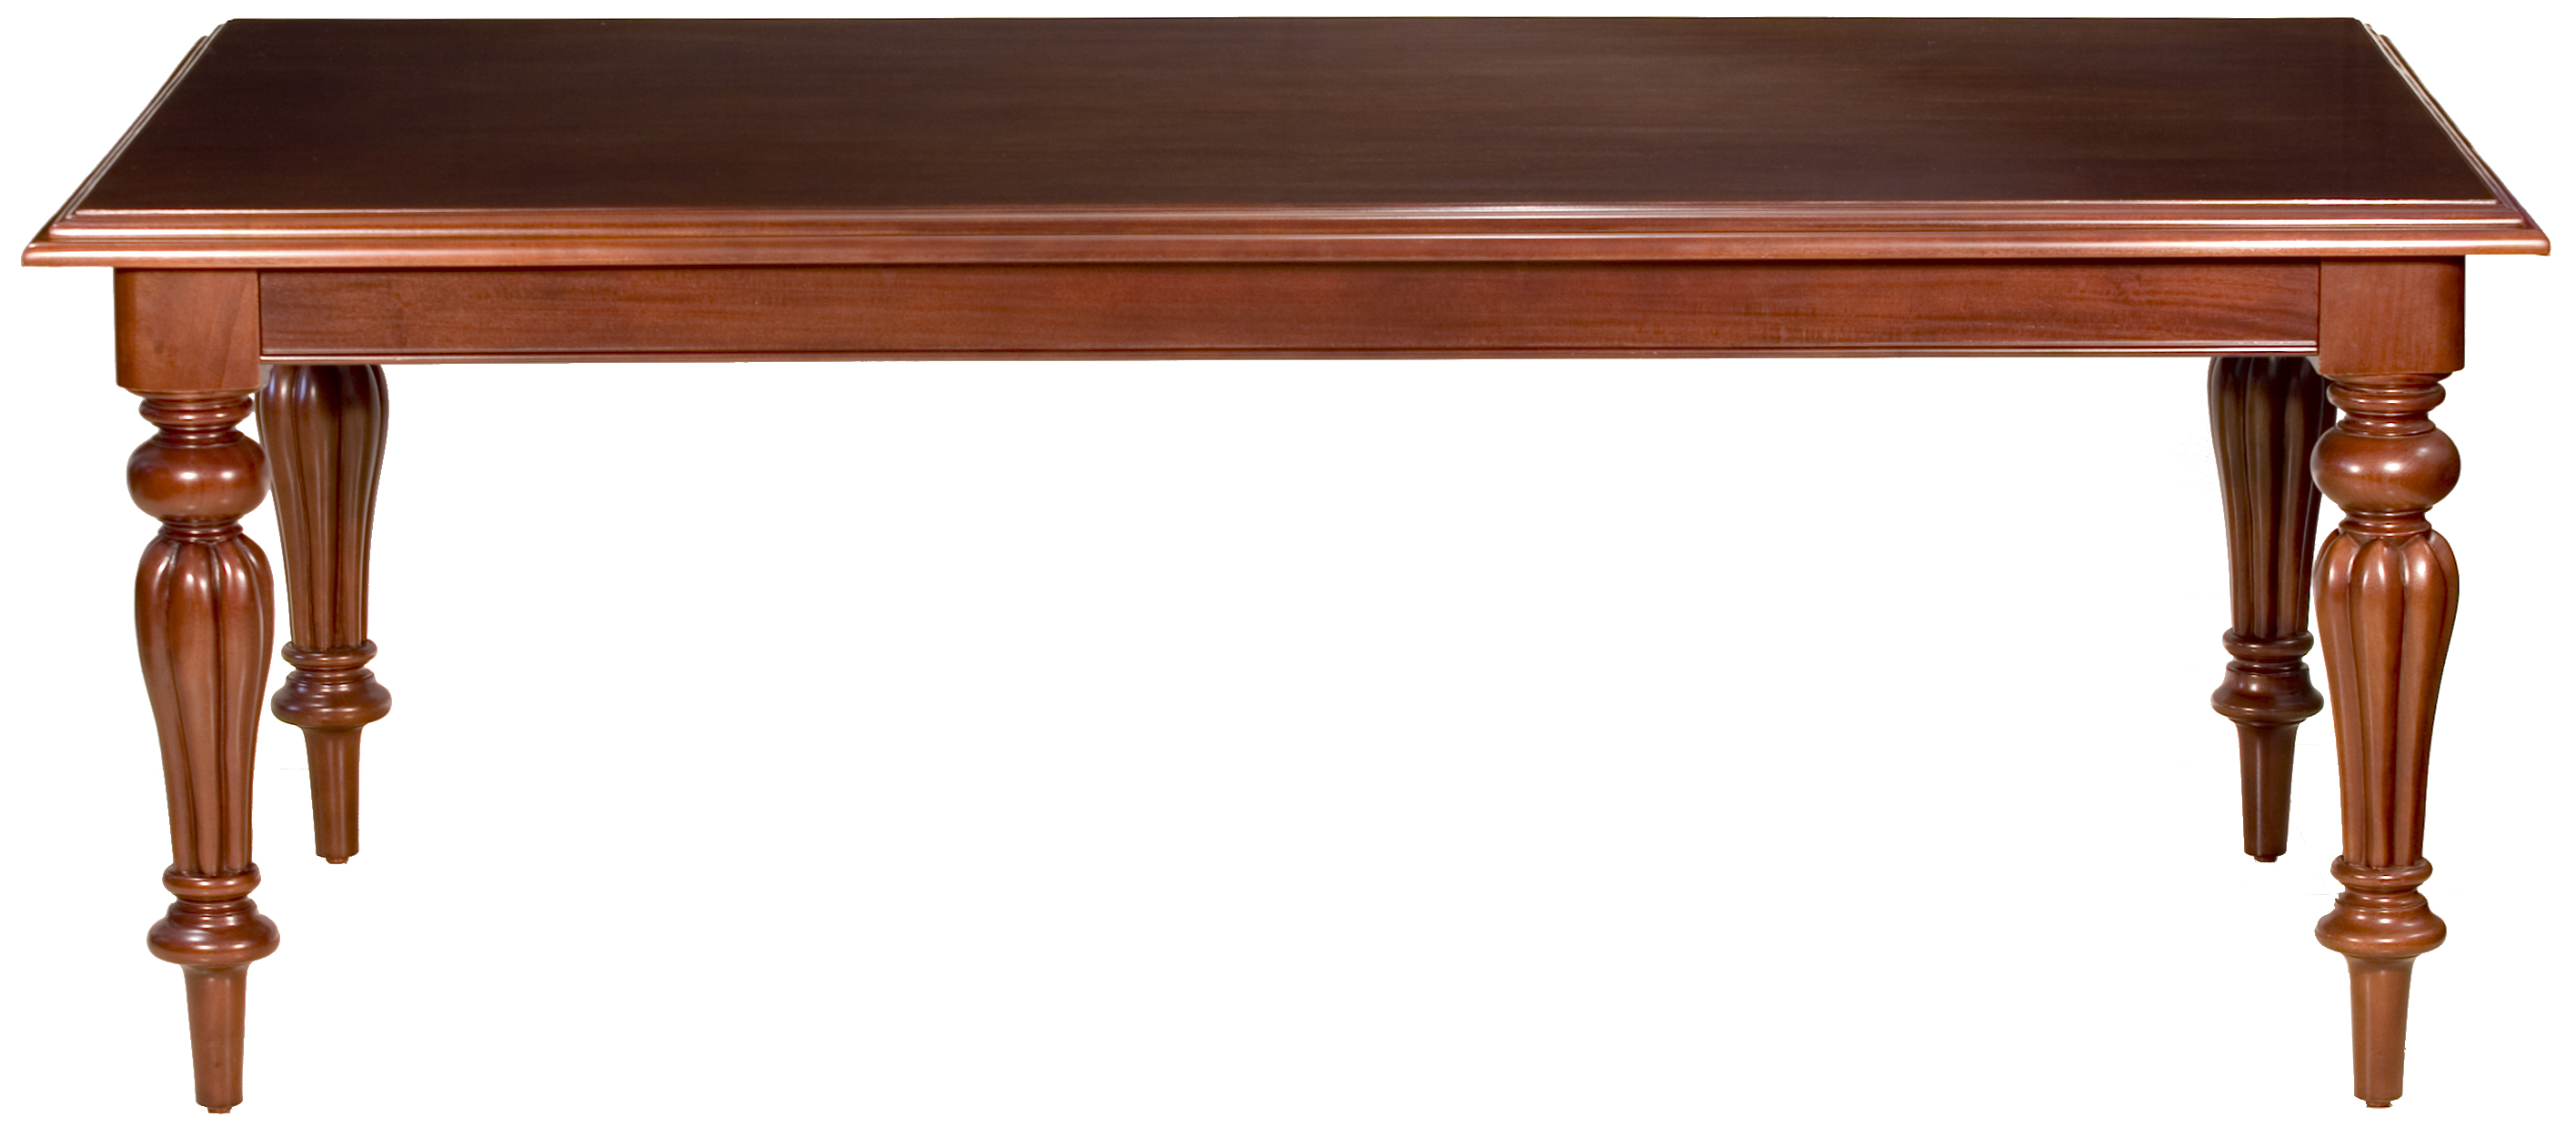 Victorian Dining Table 200x110